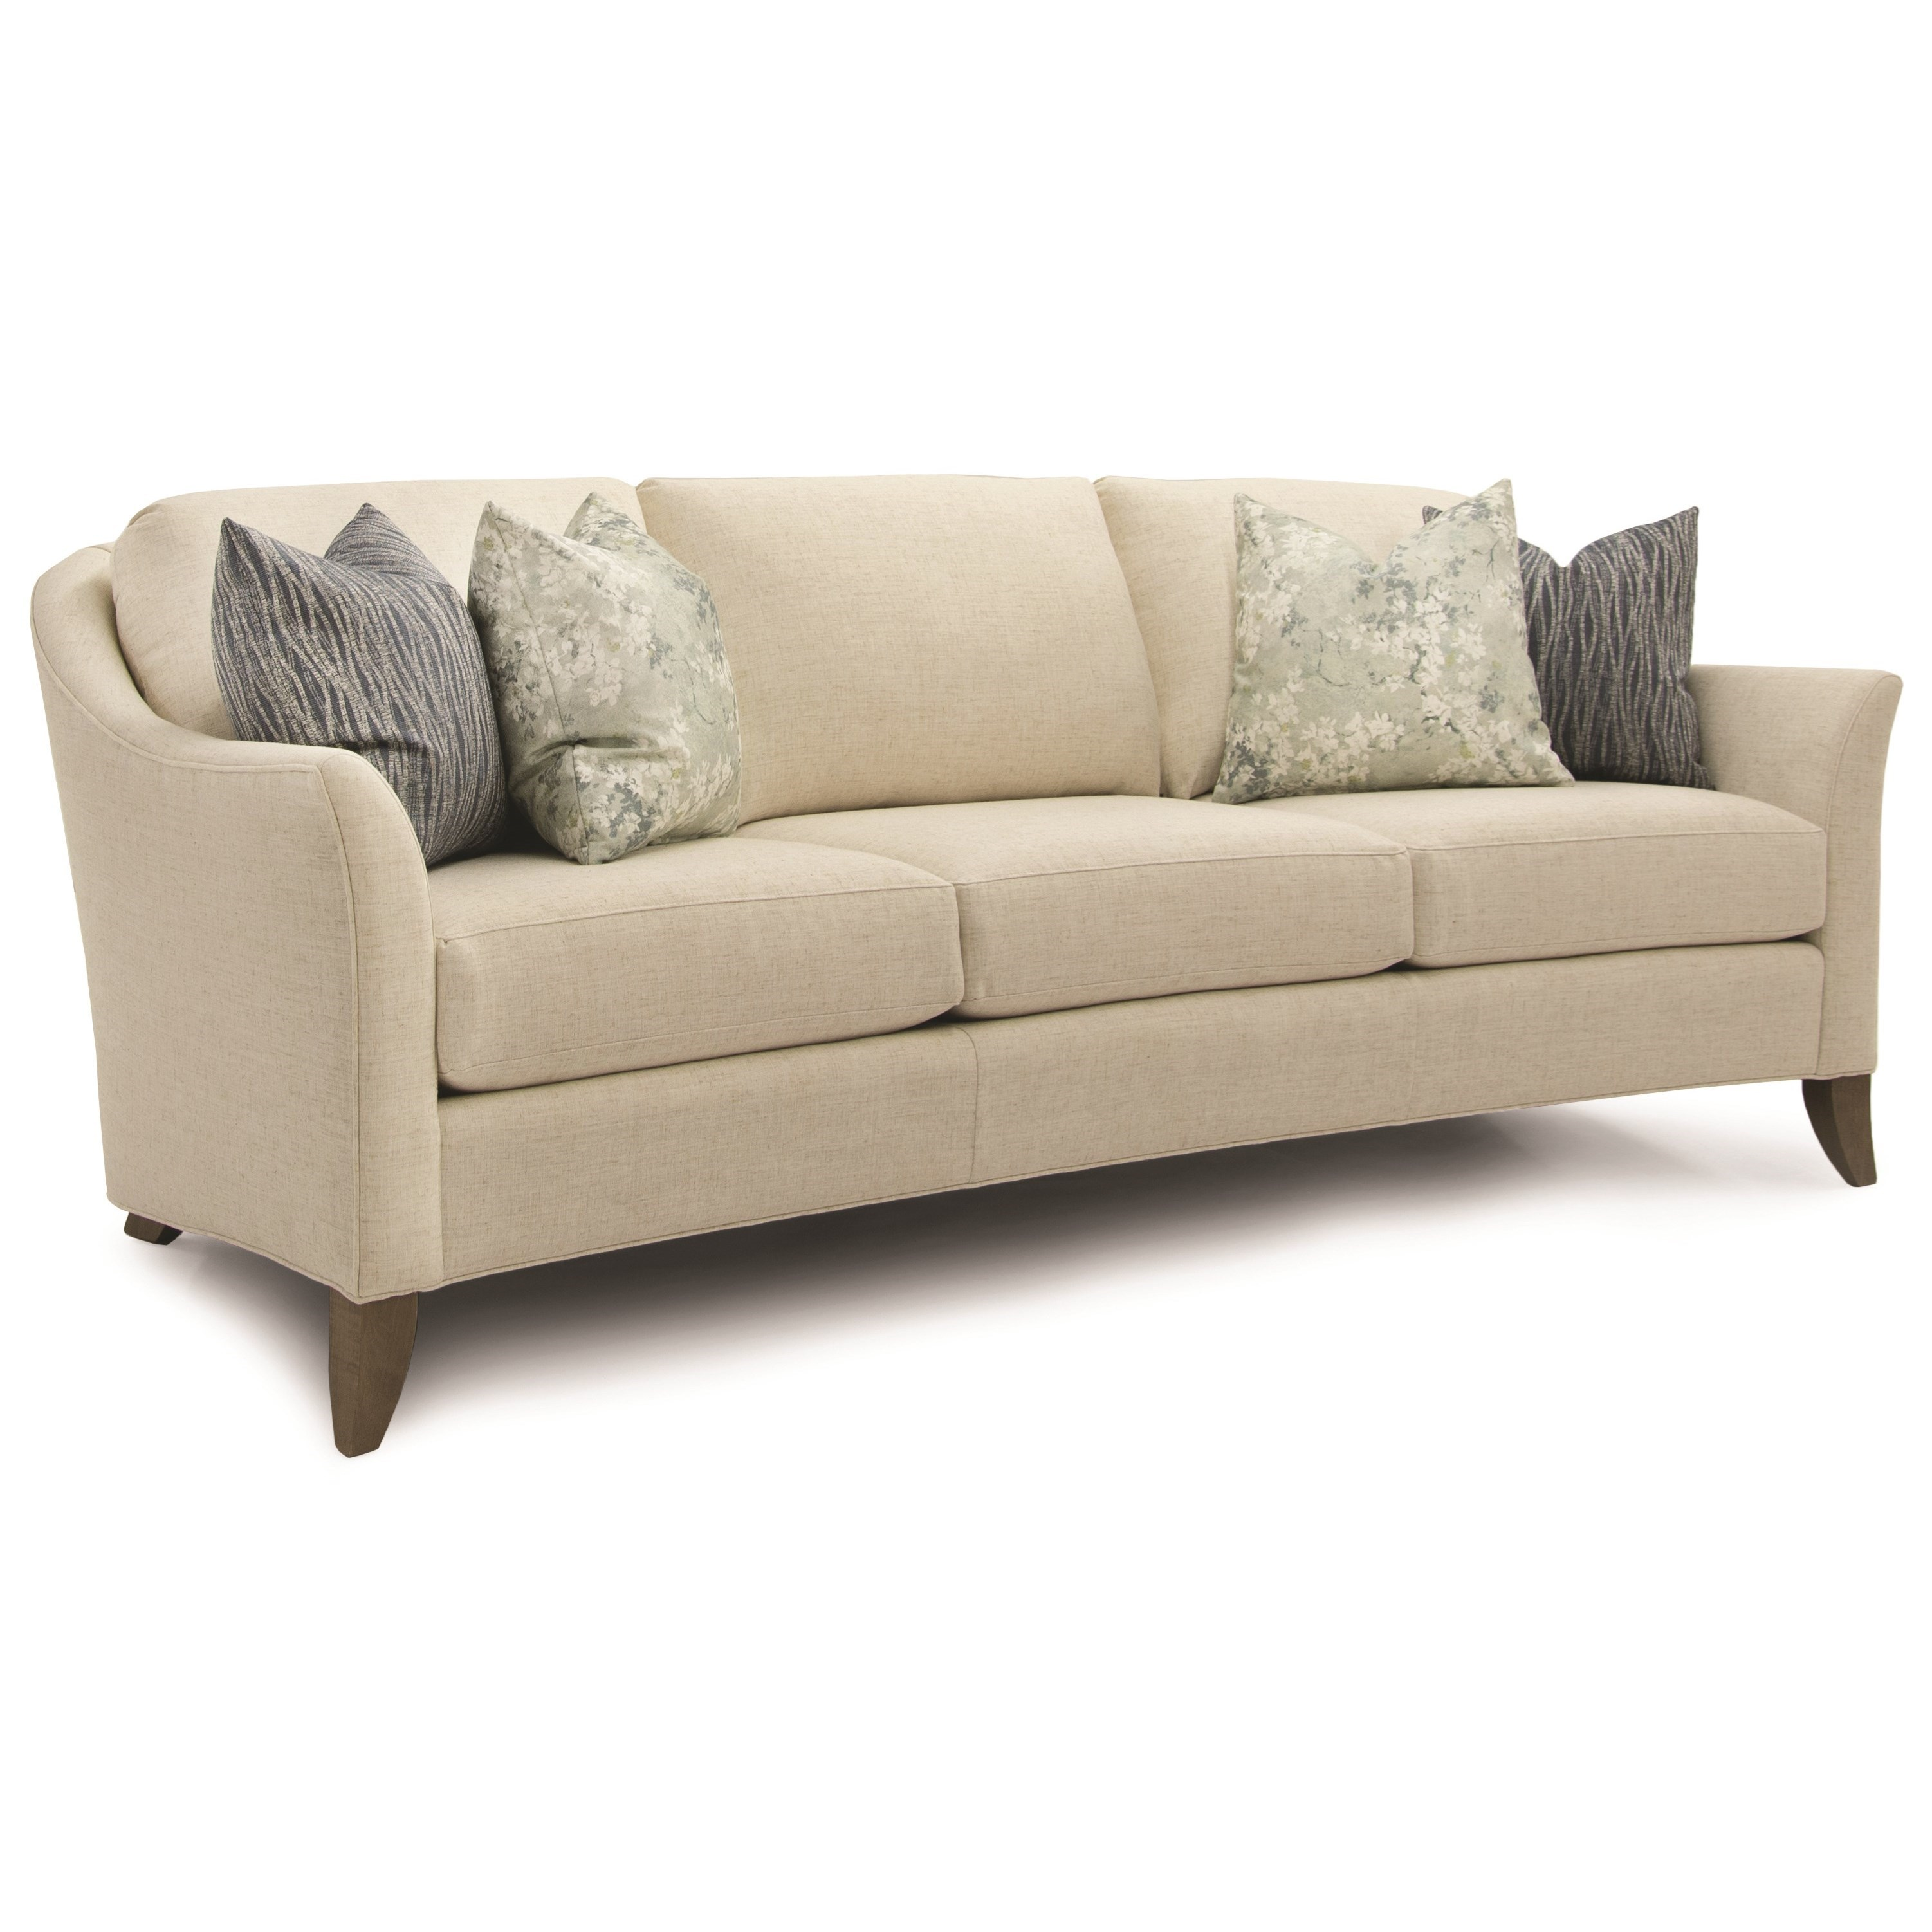 256 Sofa by Smith Brothers at Rooms for Less